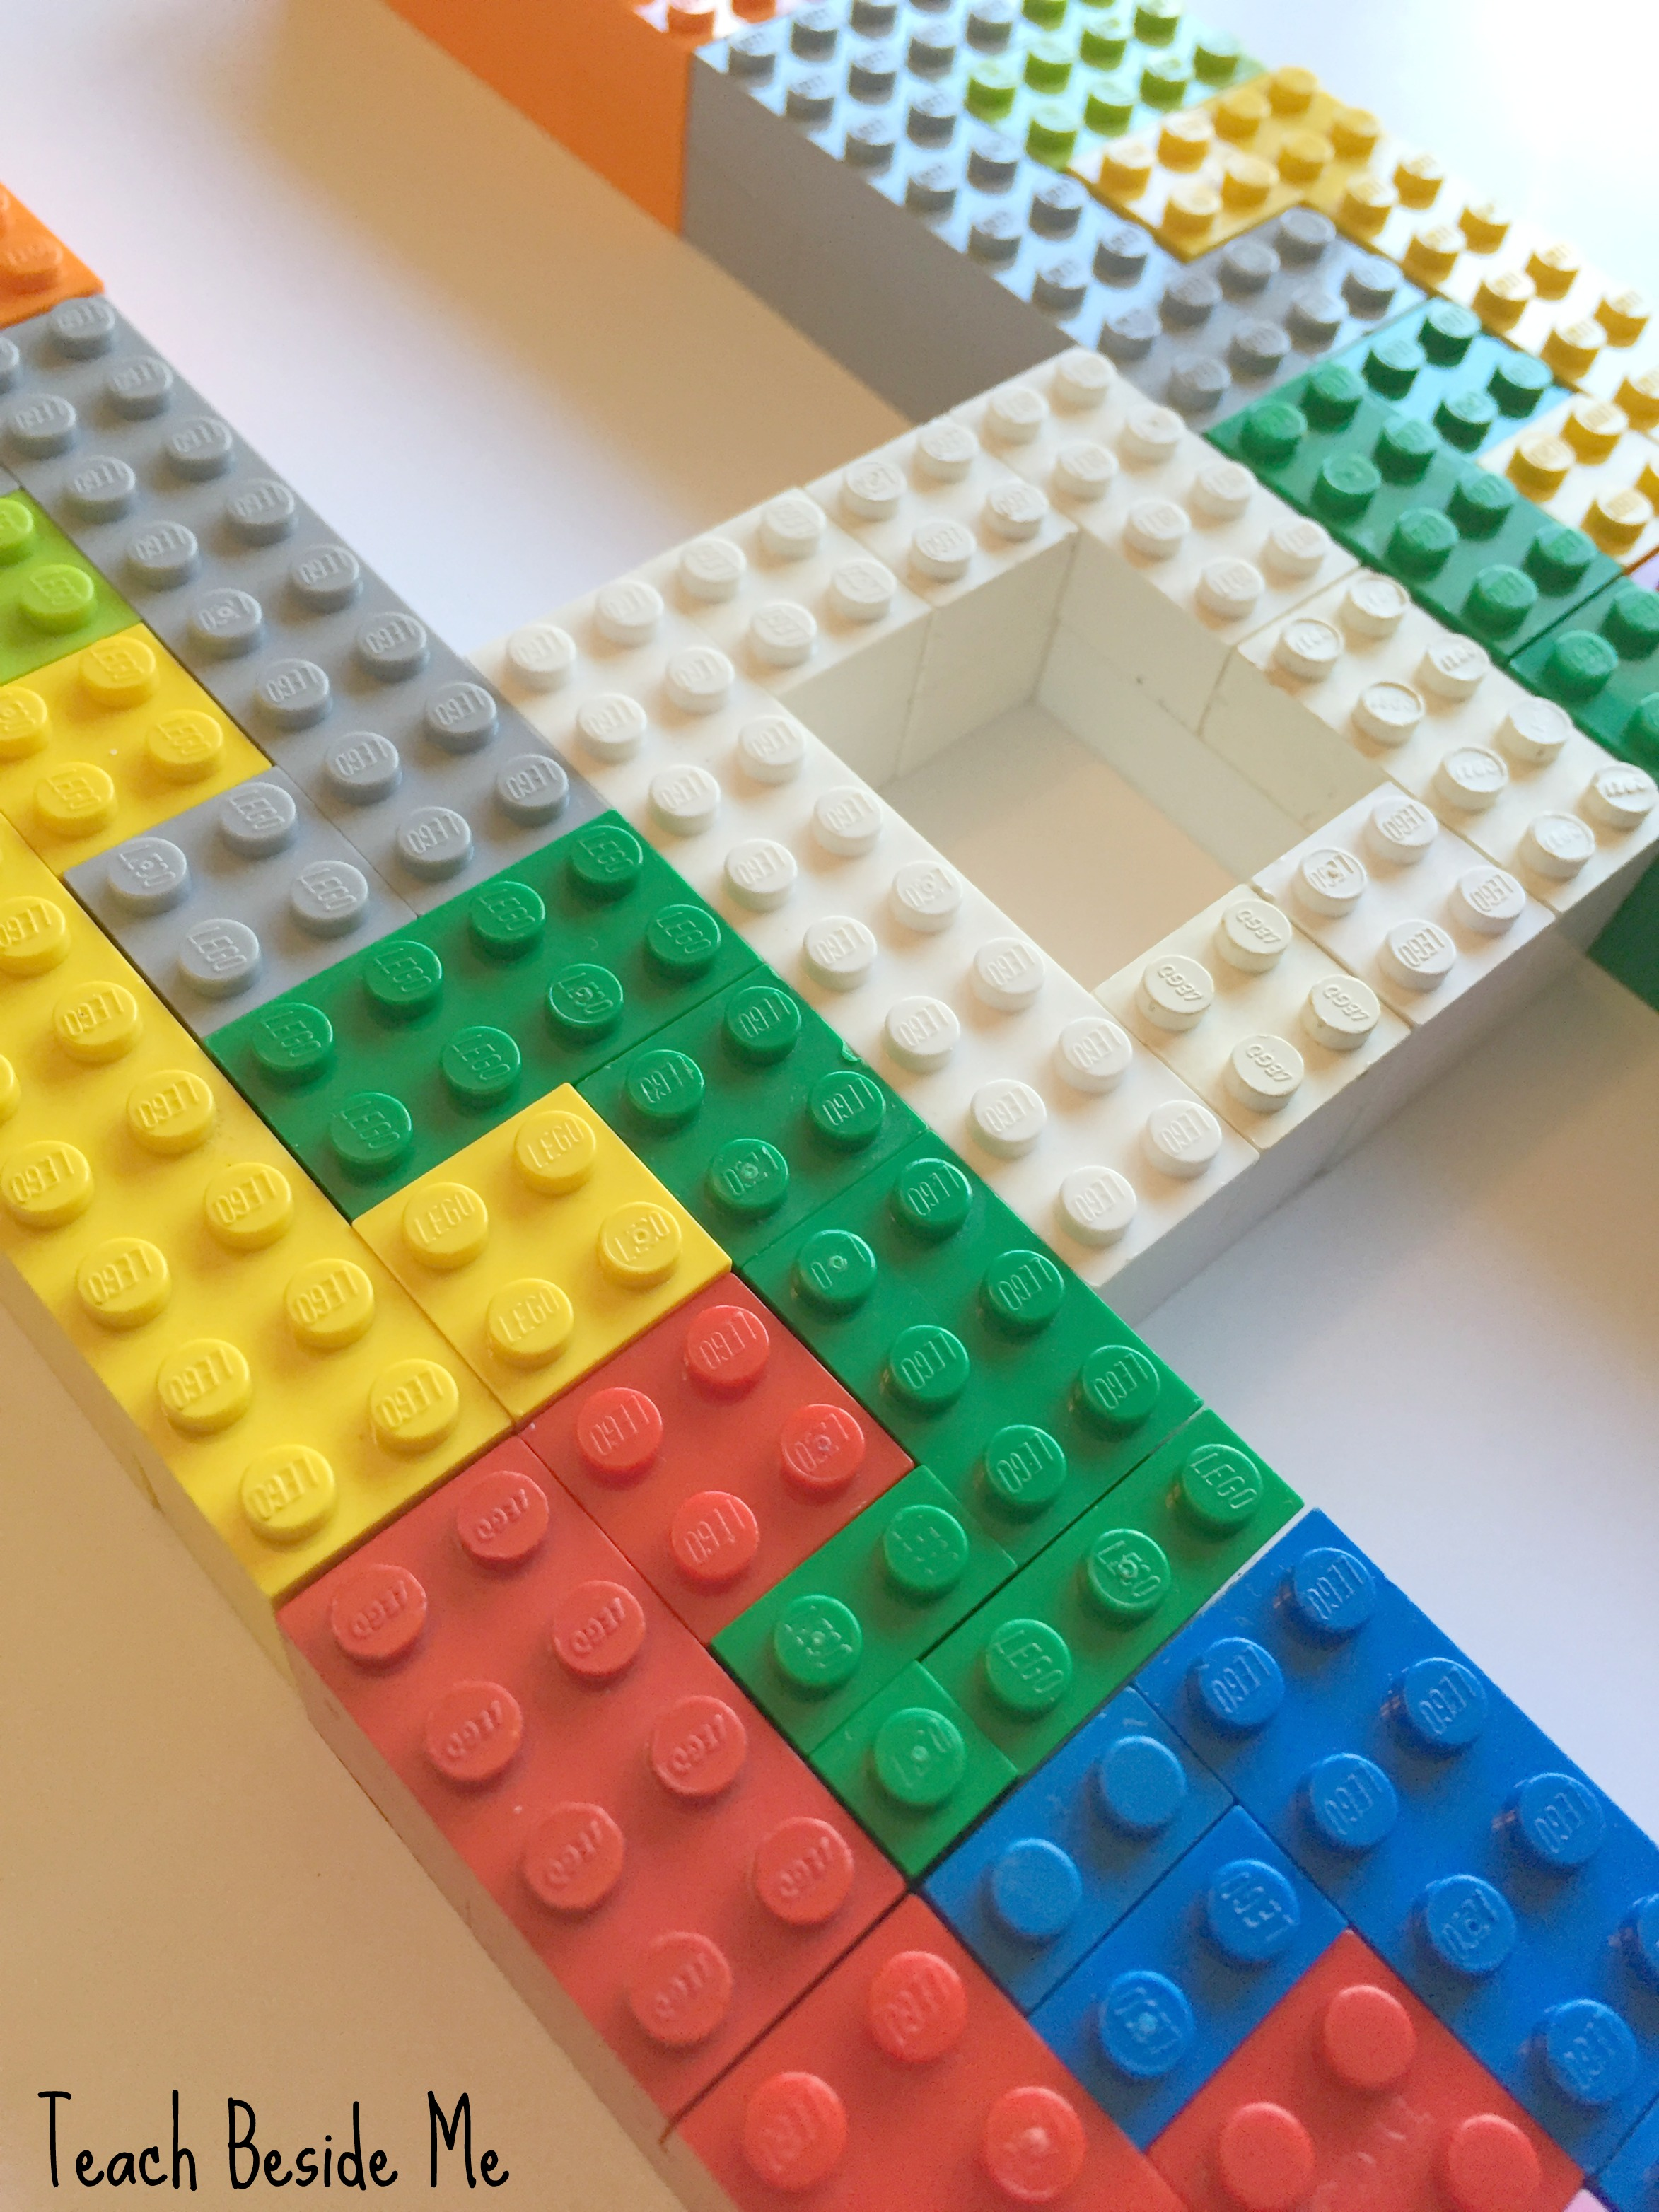 Lego Tessellation Puzzle Plus 100 Other Ways To Learn